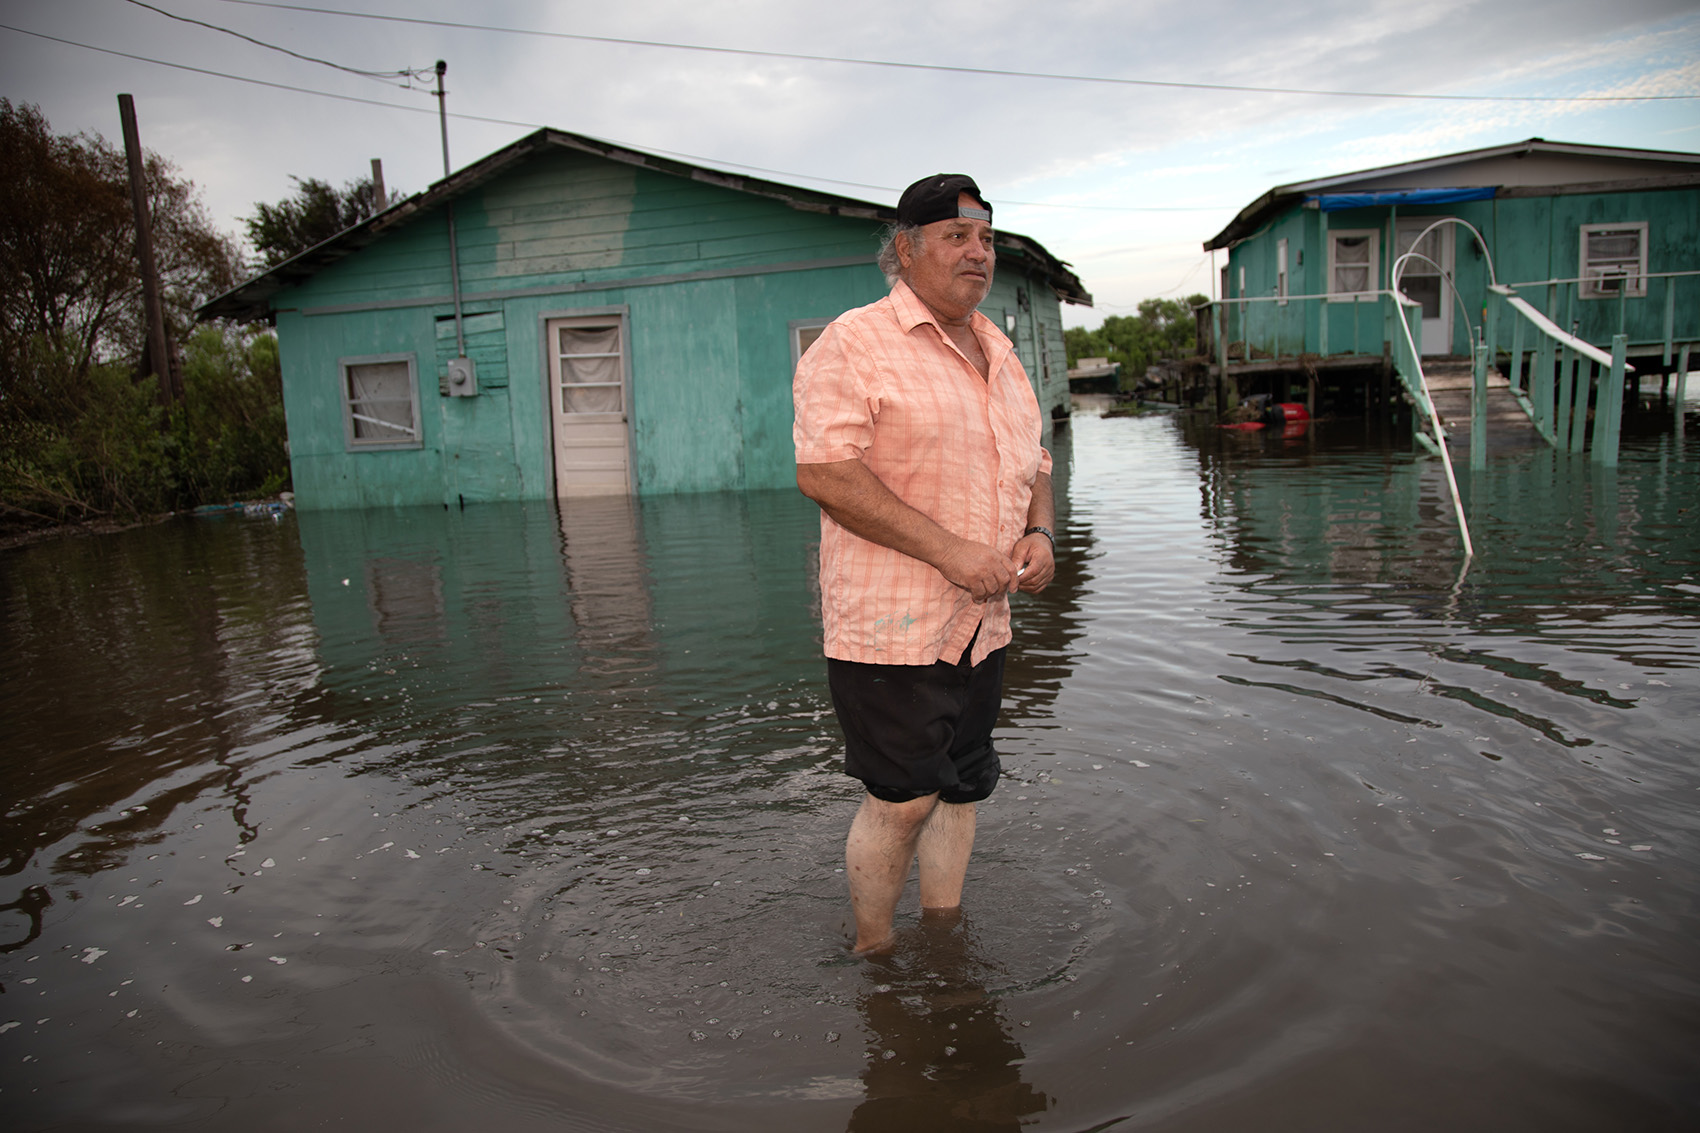 Hilton Chaisson returns to the Isle de Jean Charles to check on his flooded home.